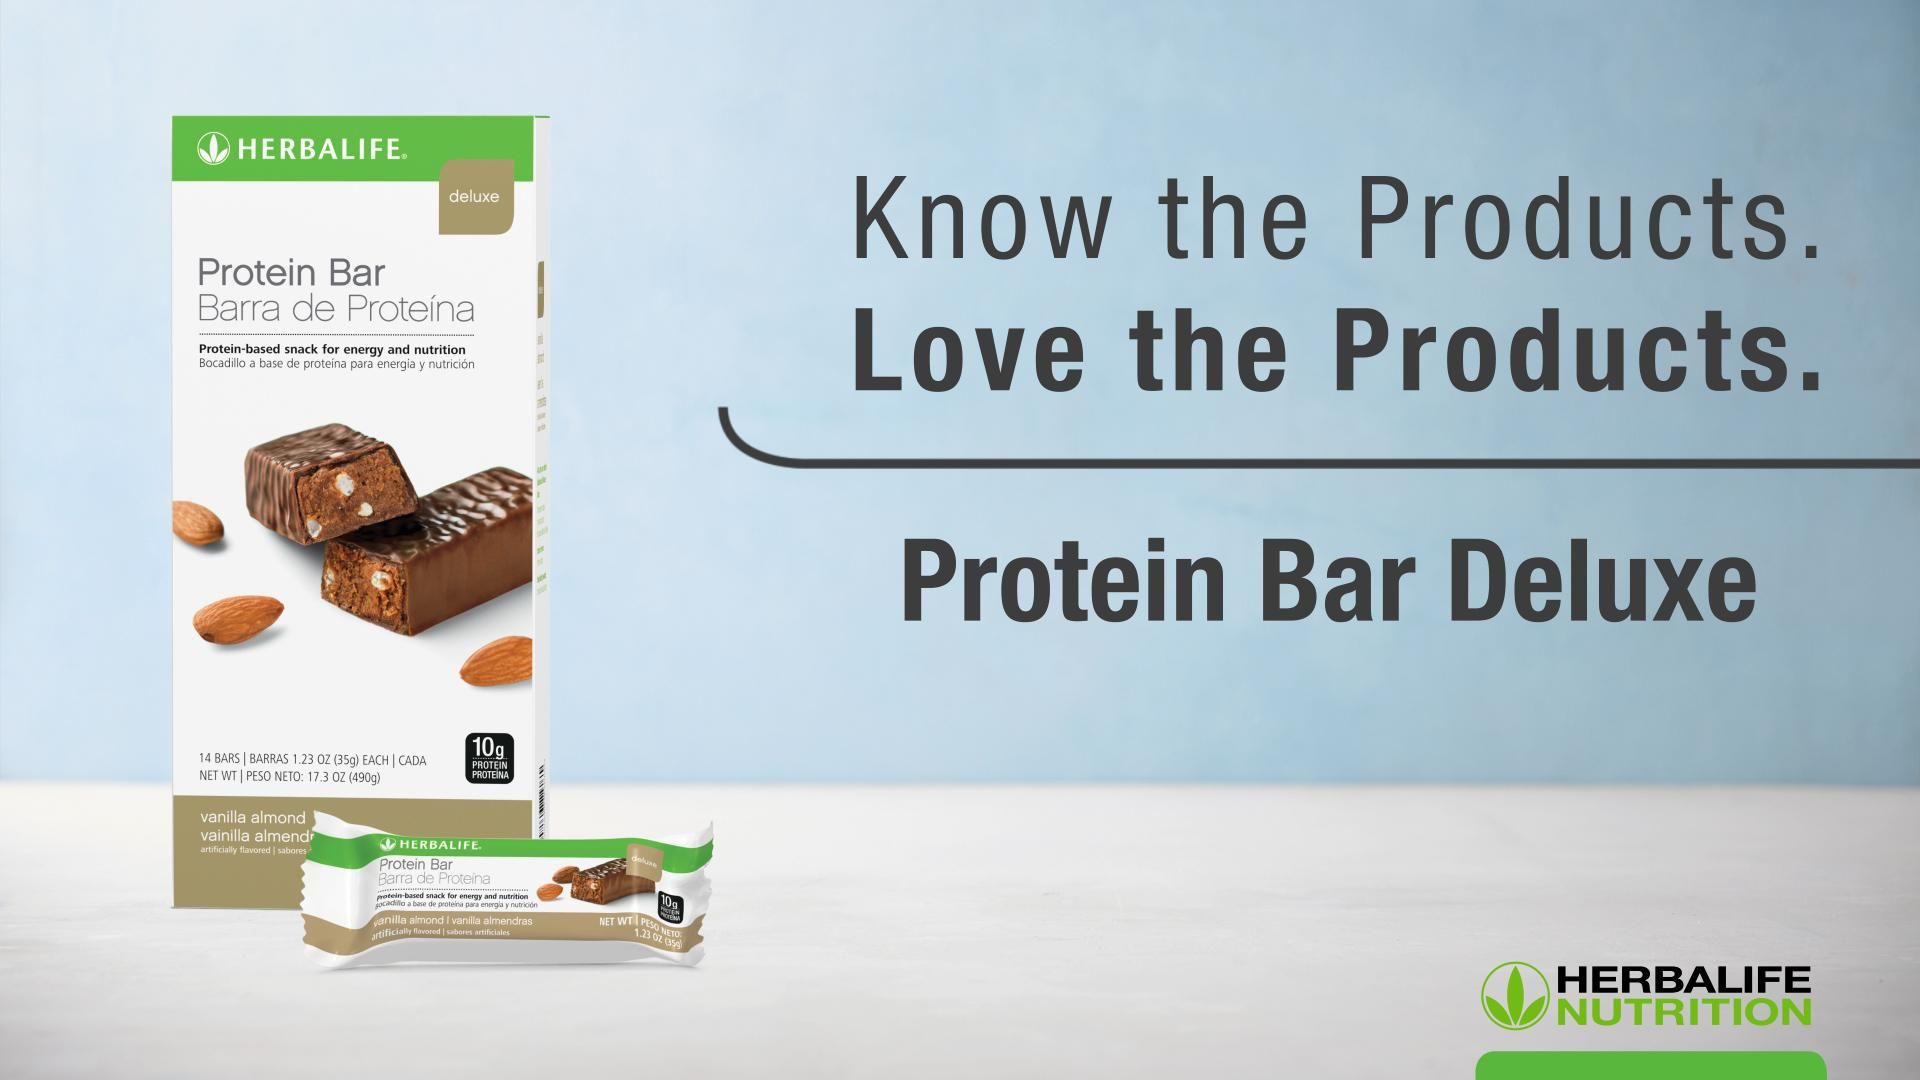 Protein Bar Deluxe: Know the Products